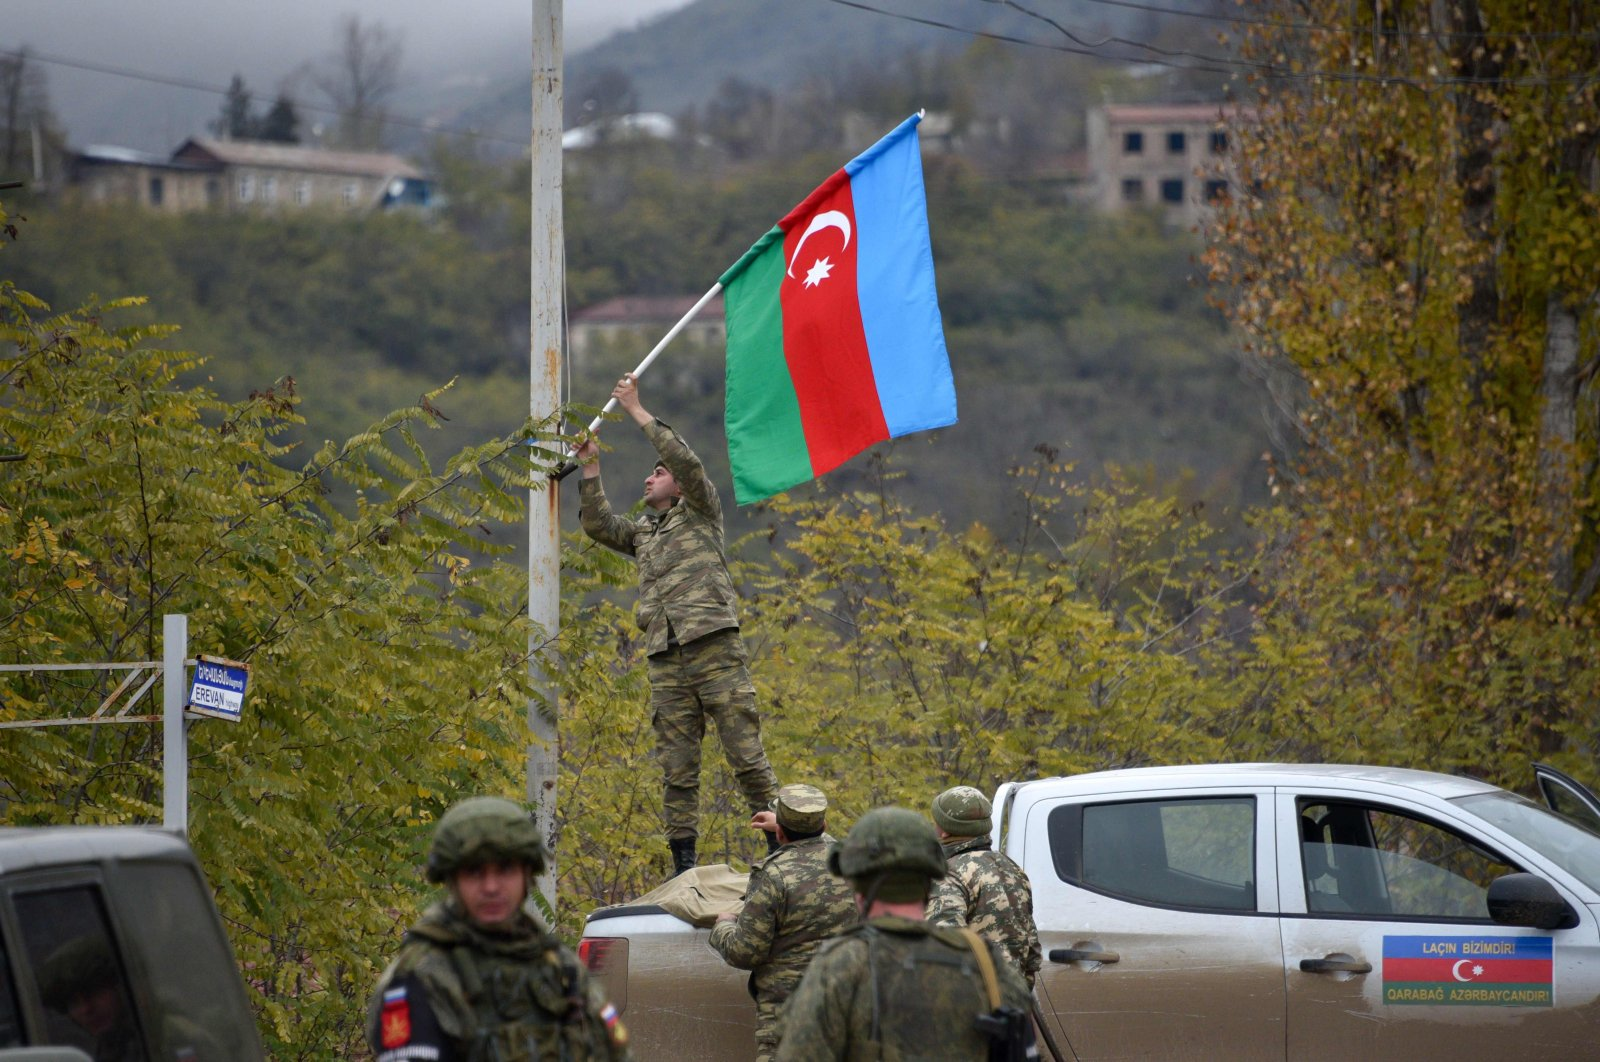 An Azerbaijani soldier fixes the national flag on a lamp post in the town of Lachin, Azerbaijan, on Dec. 1, 2020. (AFP Photo)